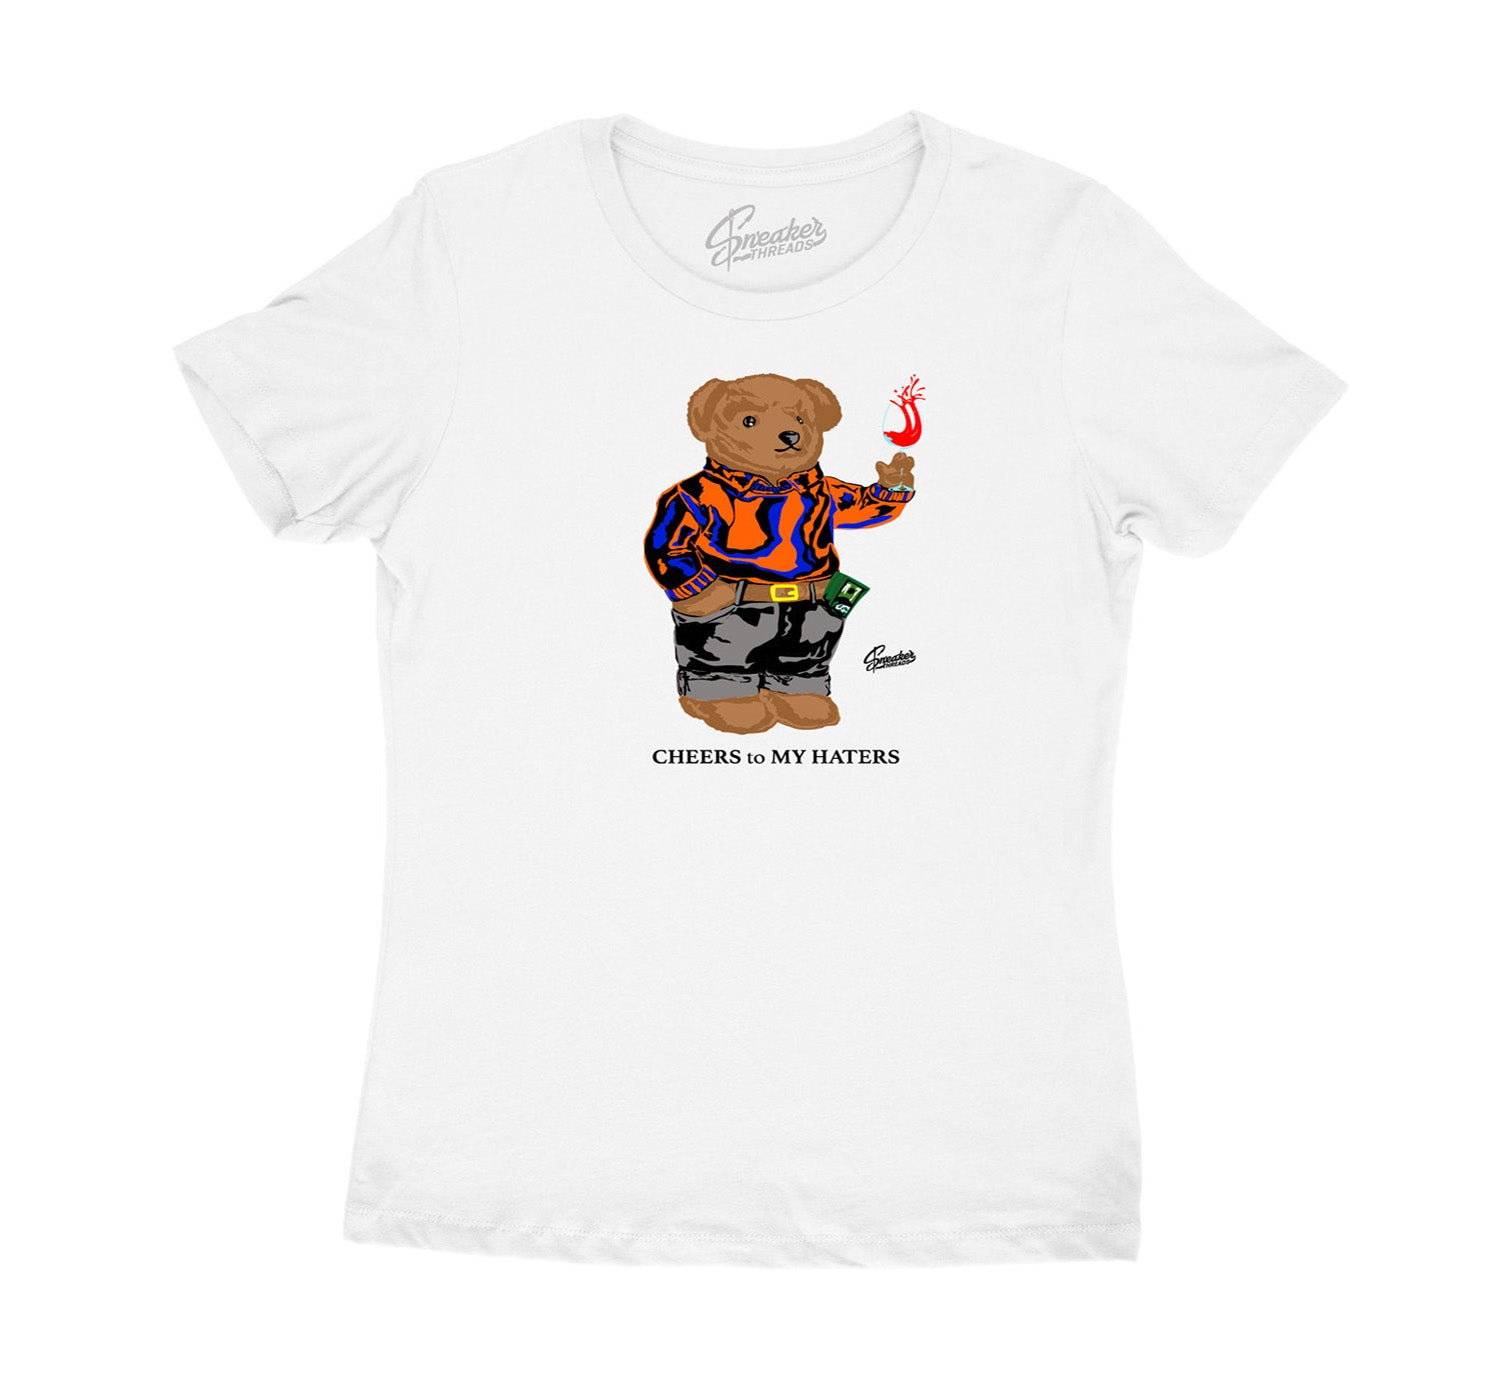 Womens Knicks 3 Shirt - Cheers Bear - White